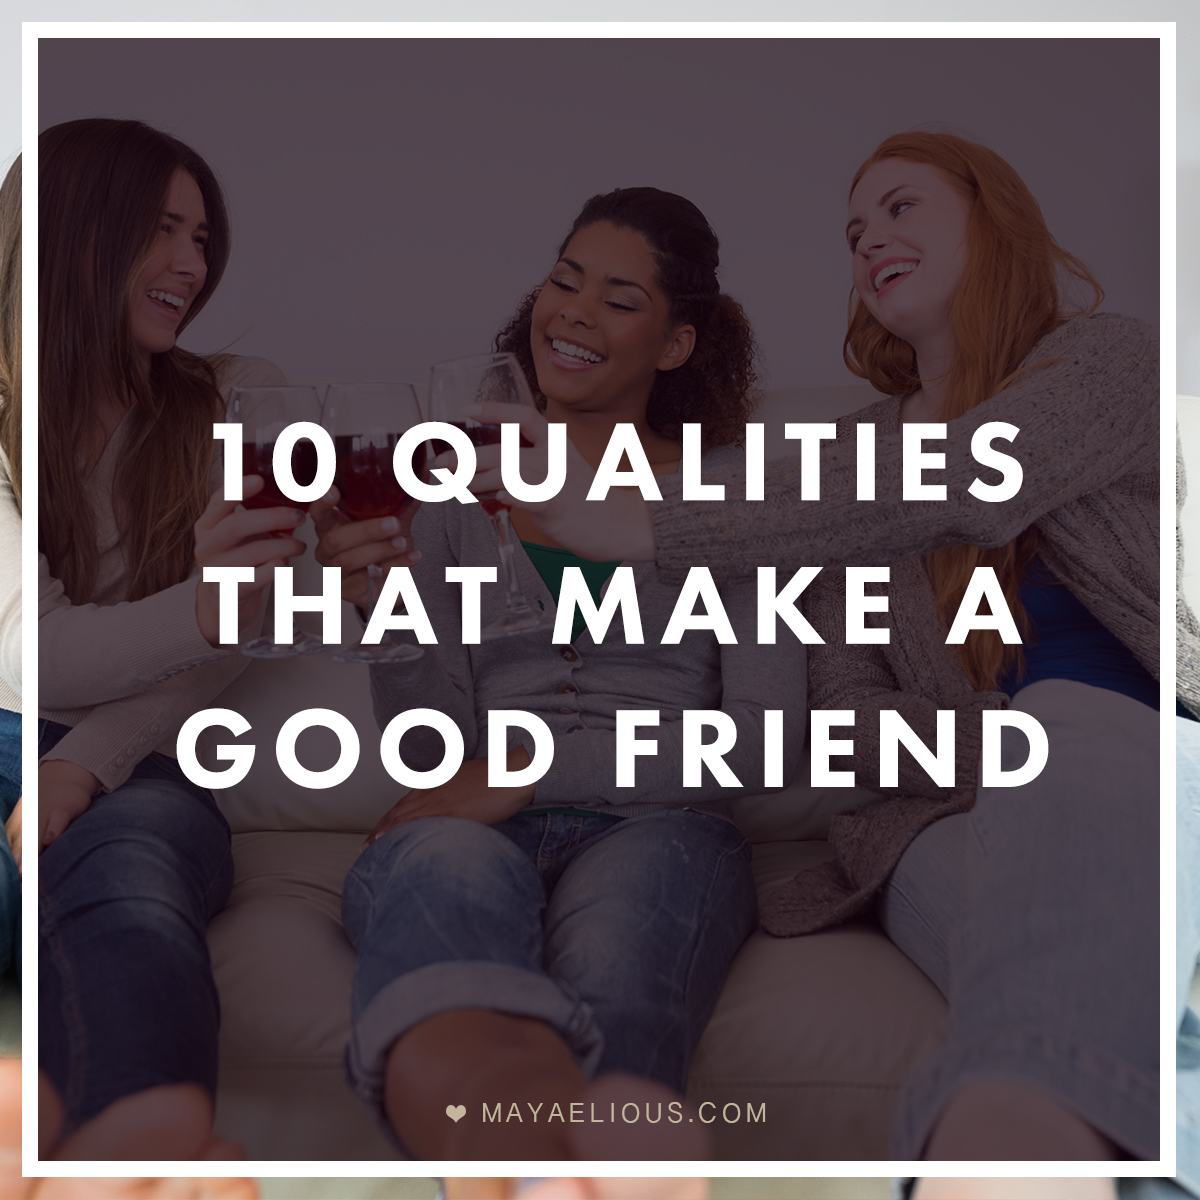 quality of a friend essay Qualities of a good friend essay - instead of wasting time in unproductive attempts, get specialized assistance here entrust your task to us and we will do our best.